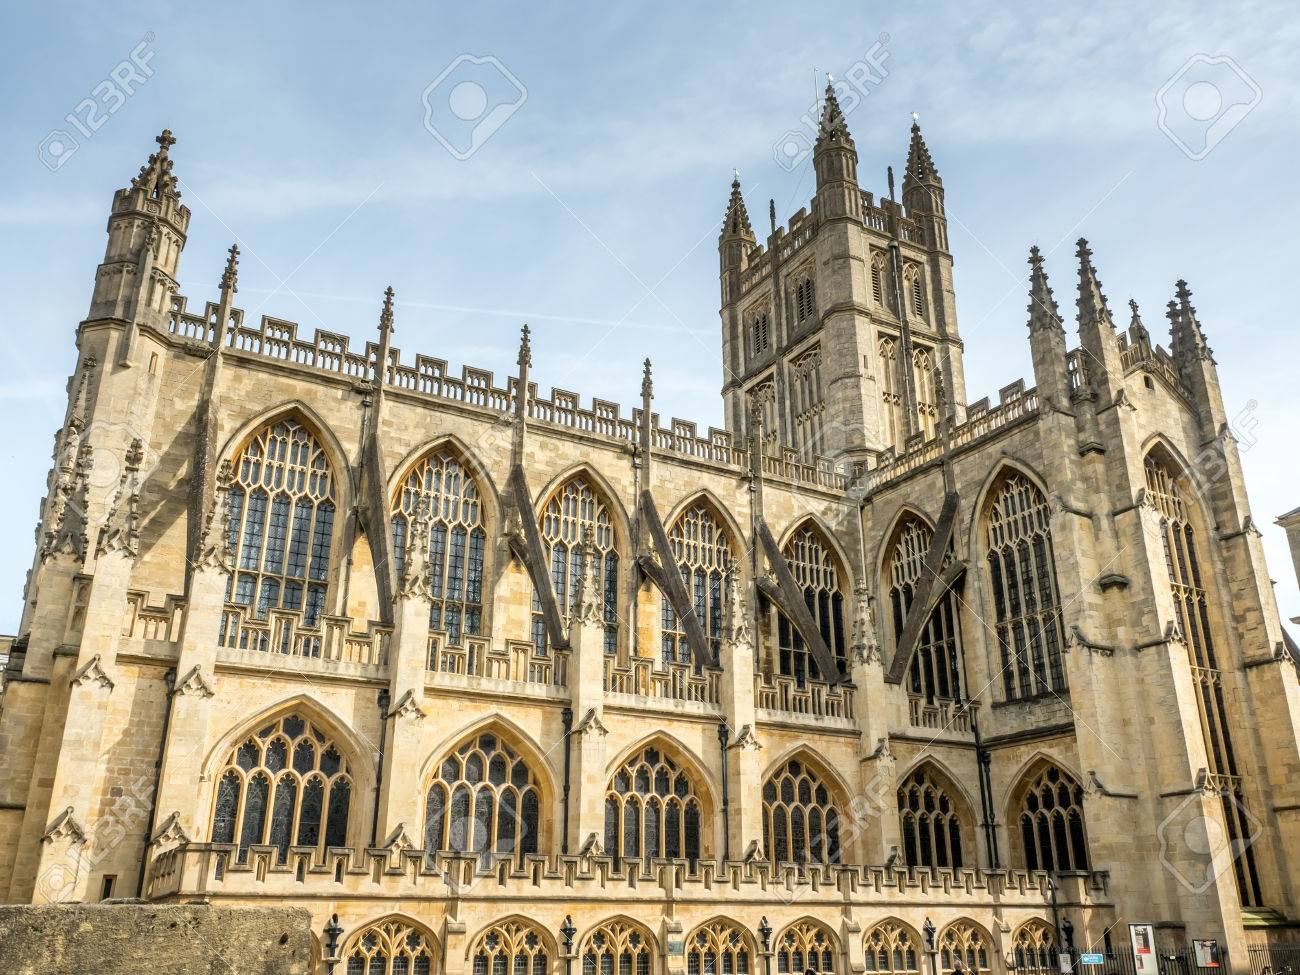 Stock Photo - The Abbey Church of Saint Peter and Saint Paul, known as Bath  Abbey, English gothic architecture building in Bath, England